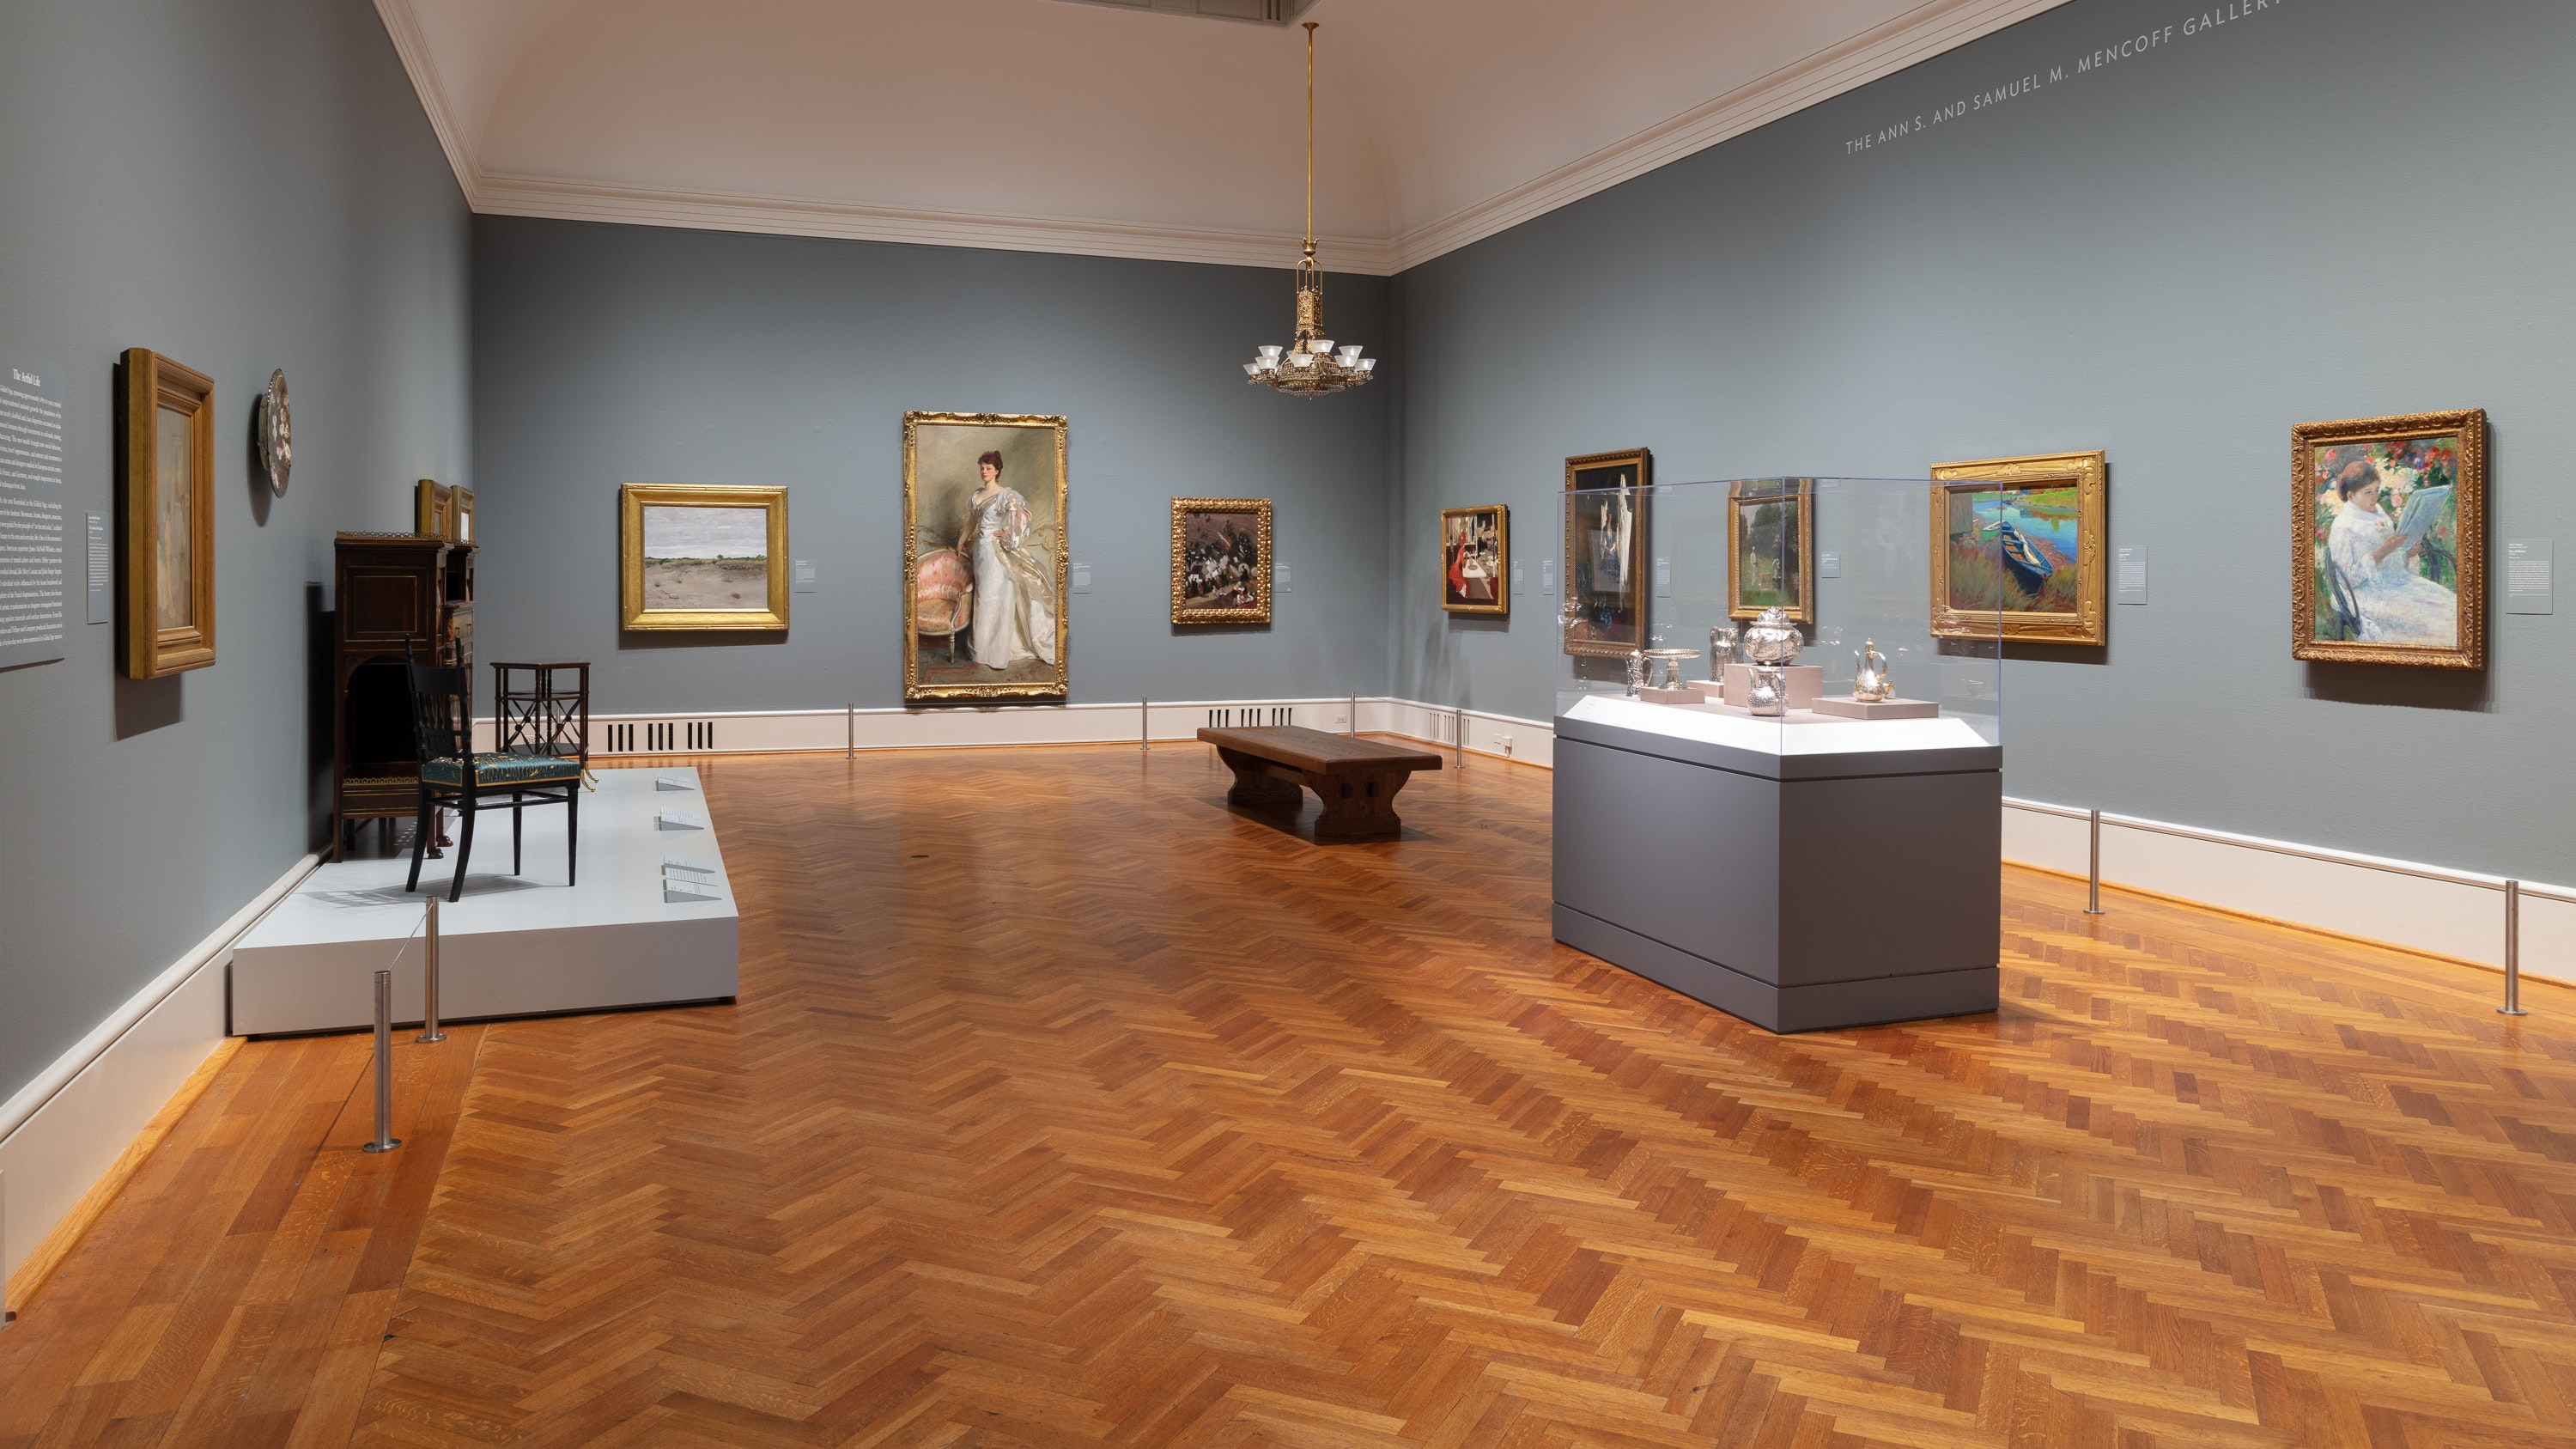 Photo of newly reinstalled American art gallery highlight Whistler, Sargent and the Gilded Age